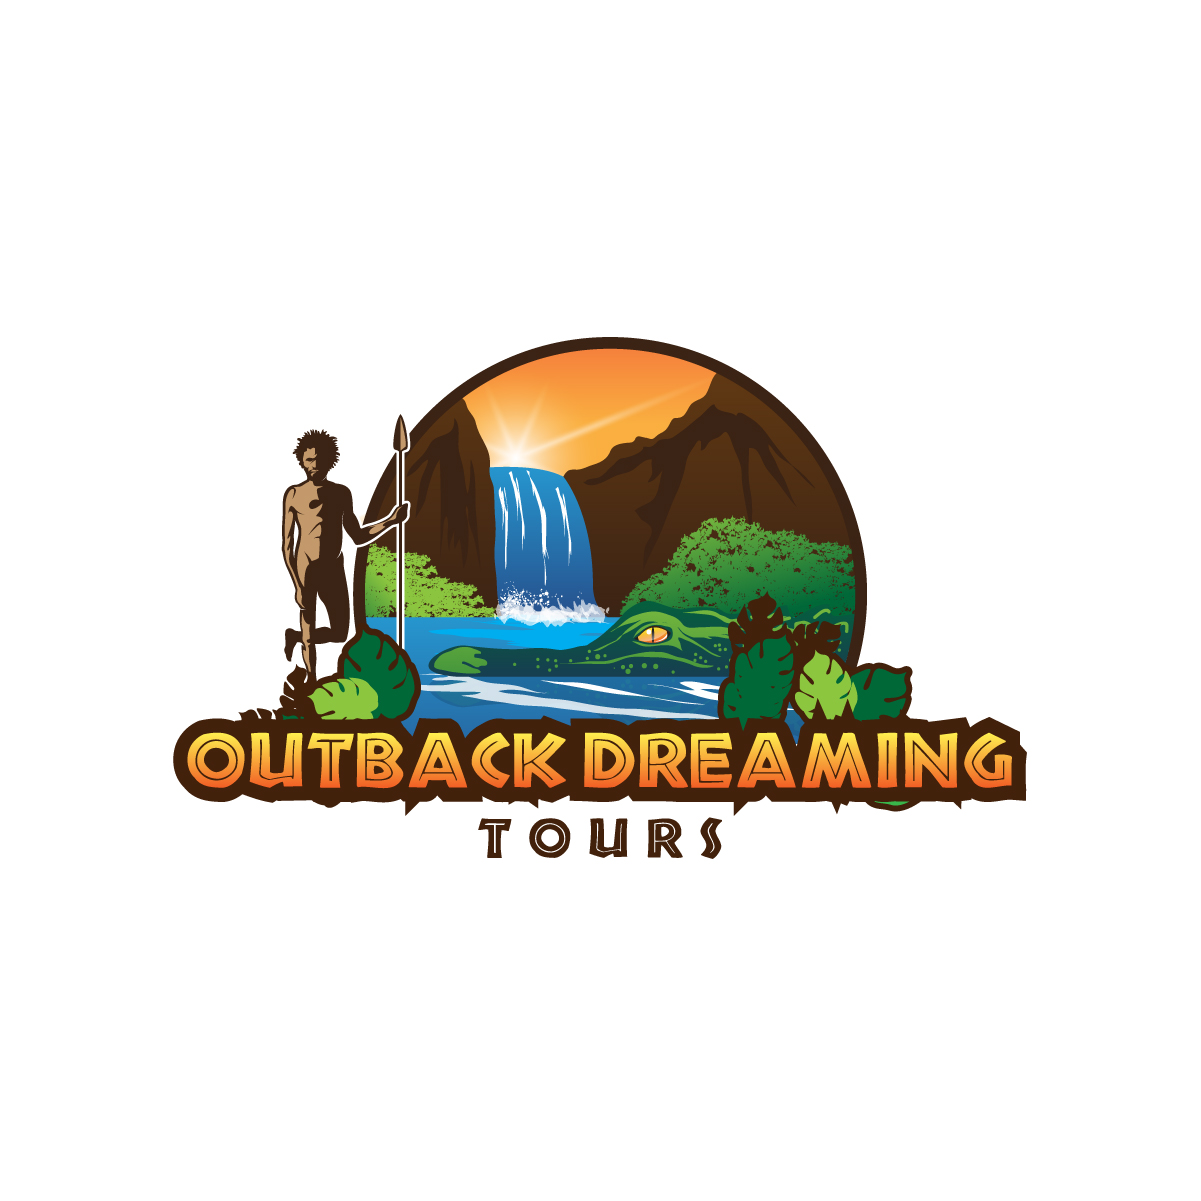 Outback Dreaming Tours Logo by creative.bugs